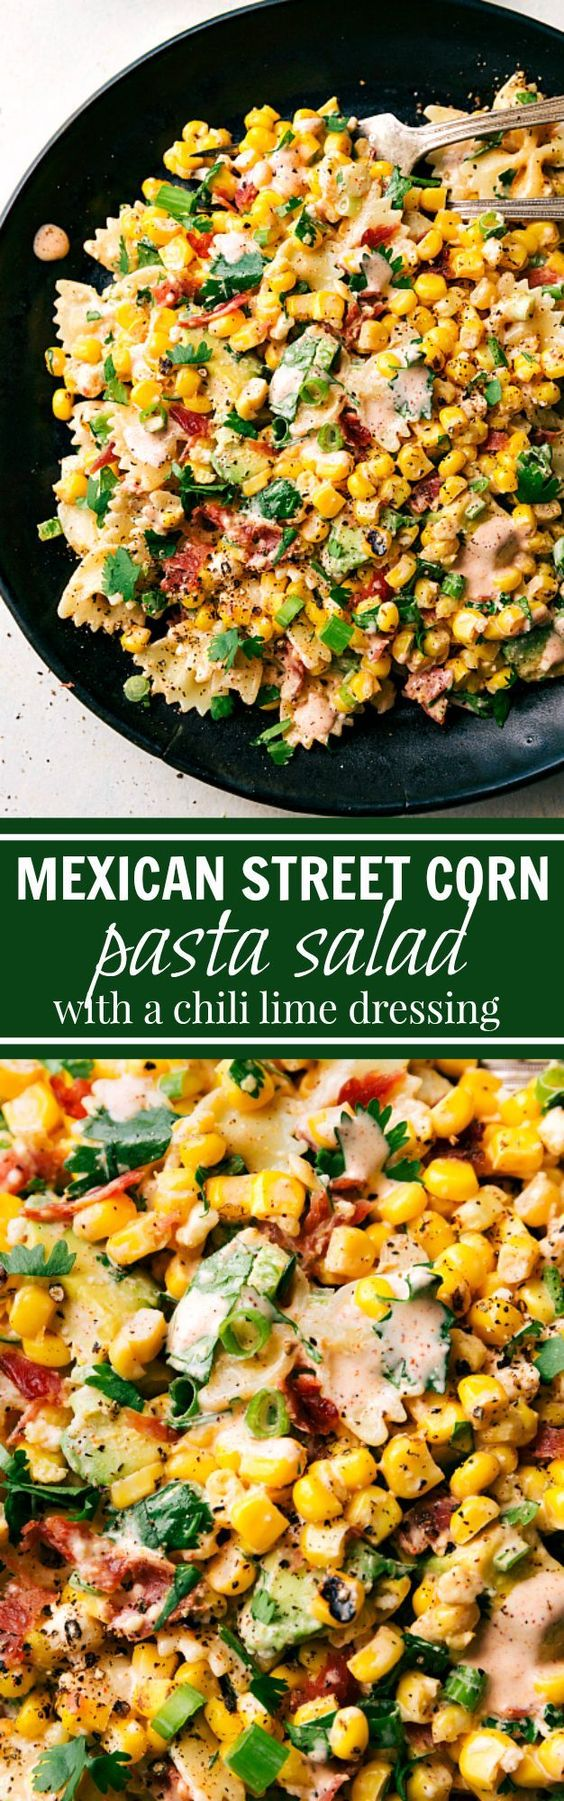 Mexican Street Corn Pasta Salad Recipe via Chelsea's Messy Apron - A delicious MEXICAN STREET CORN Pasta salad with tons of veggies, bacon, and a simple creamy CHILI LIME dressing. Easy Pasta Salad Recipes - The BEST Yummy Barbecue Side Dishes, Potluck Favorites and Summer Dinner Party Crowd Pleasers #pastasaladrecipes #pastasalads #pastasalad #easypastasalad #potluckrecipes #potluck #partyfood #4thofJuly #picnicfood #sidedishrecipes #easysidedishes #cookoutfood #barbecuefood #blockparty